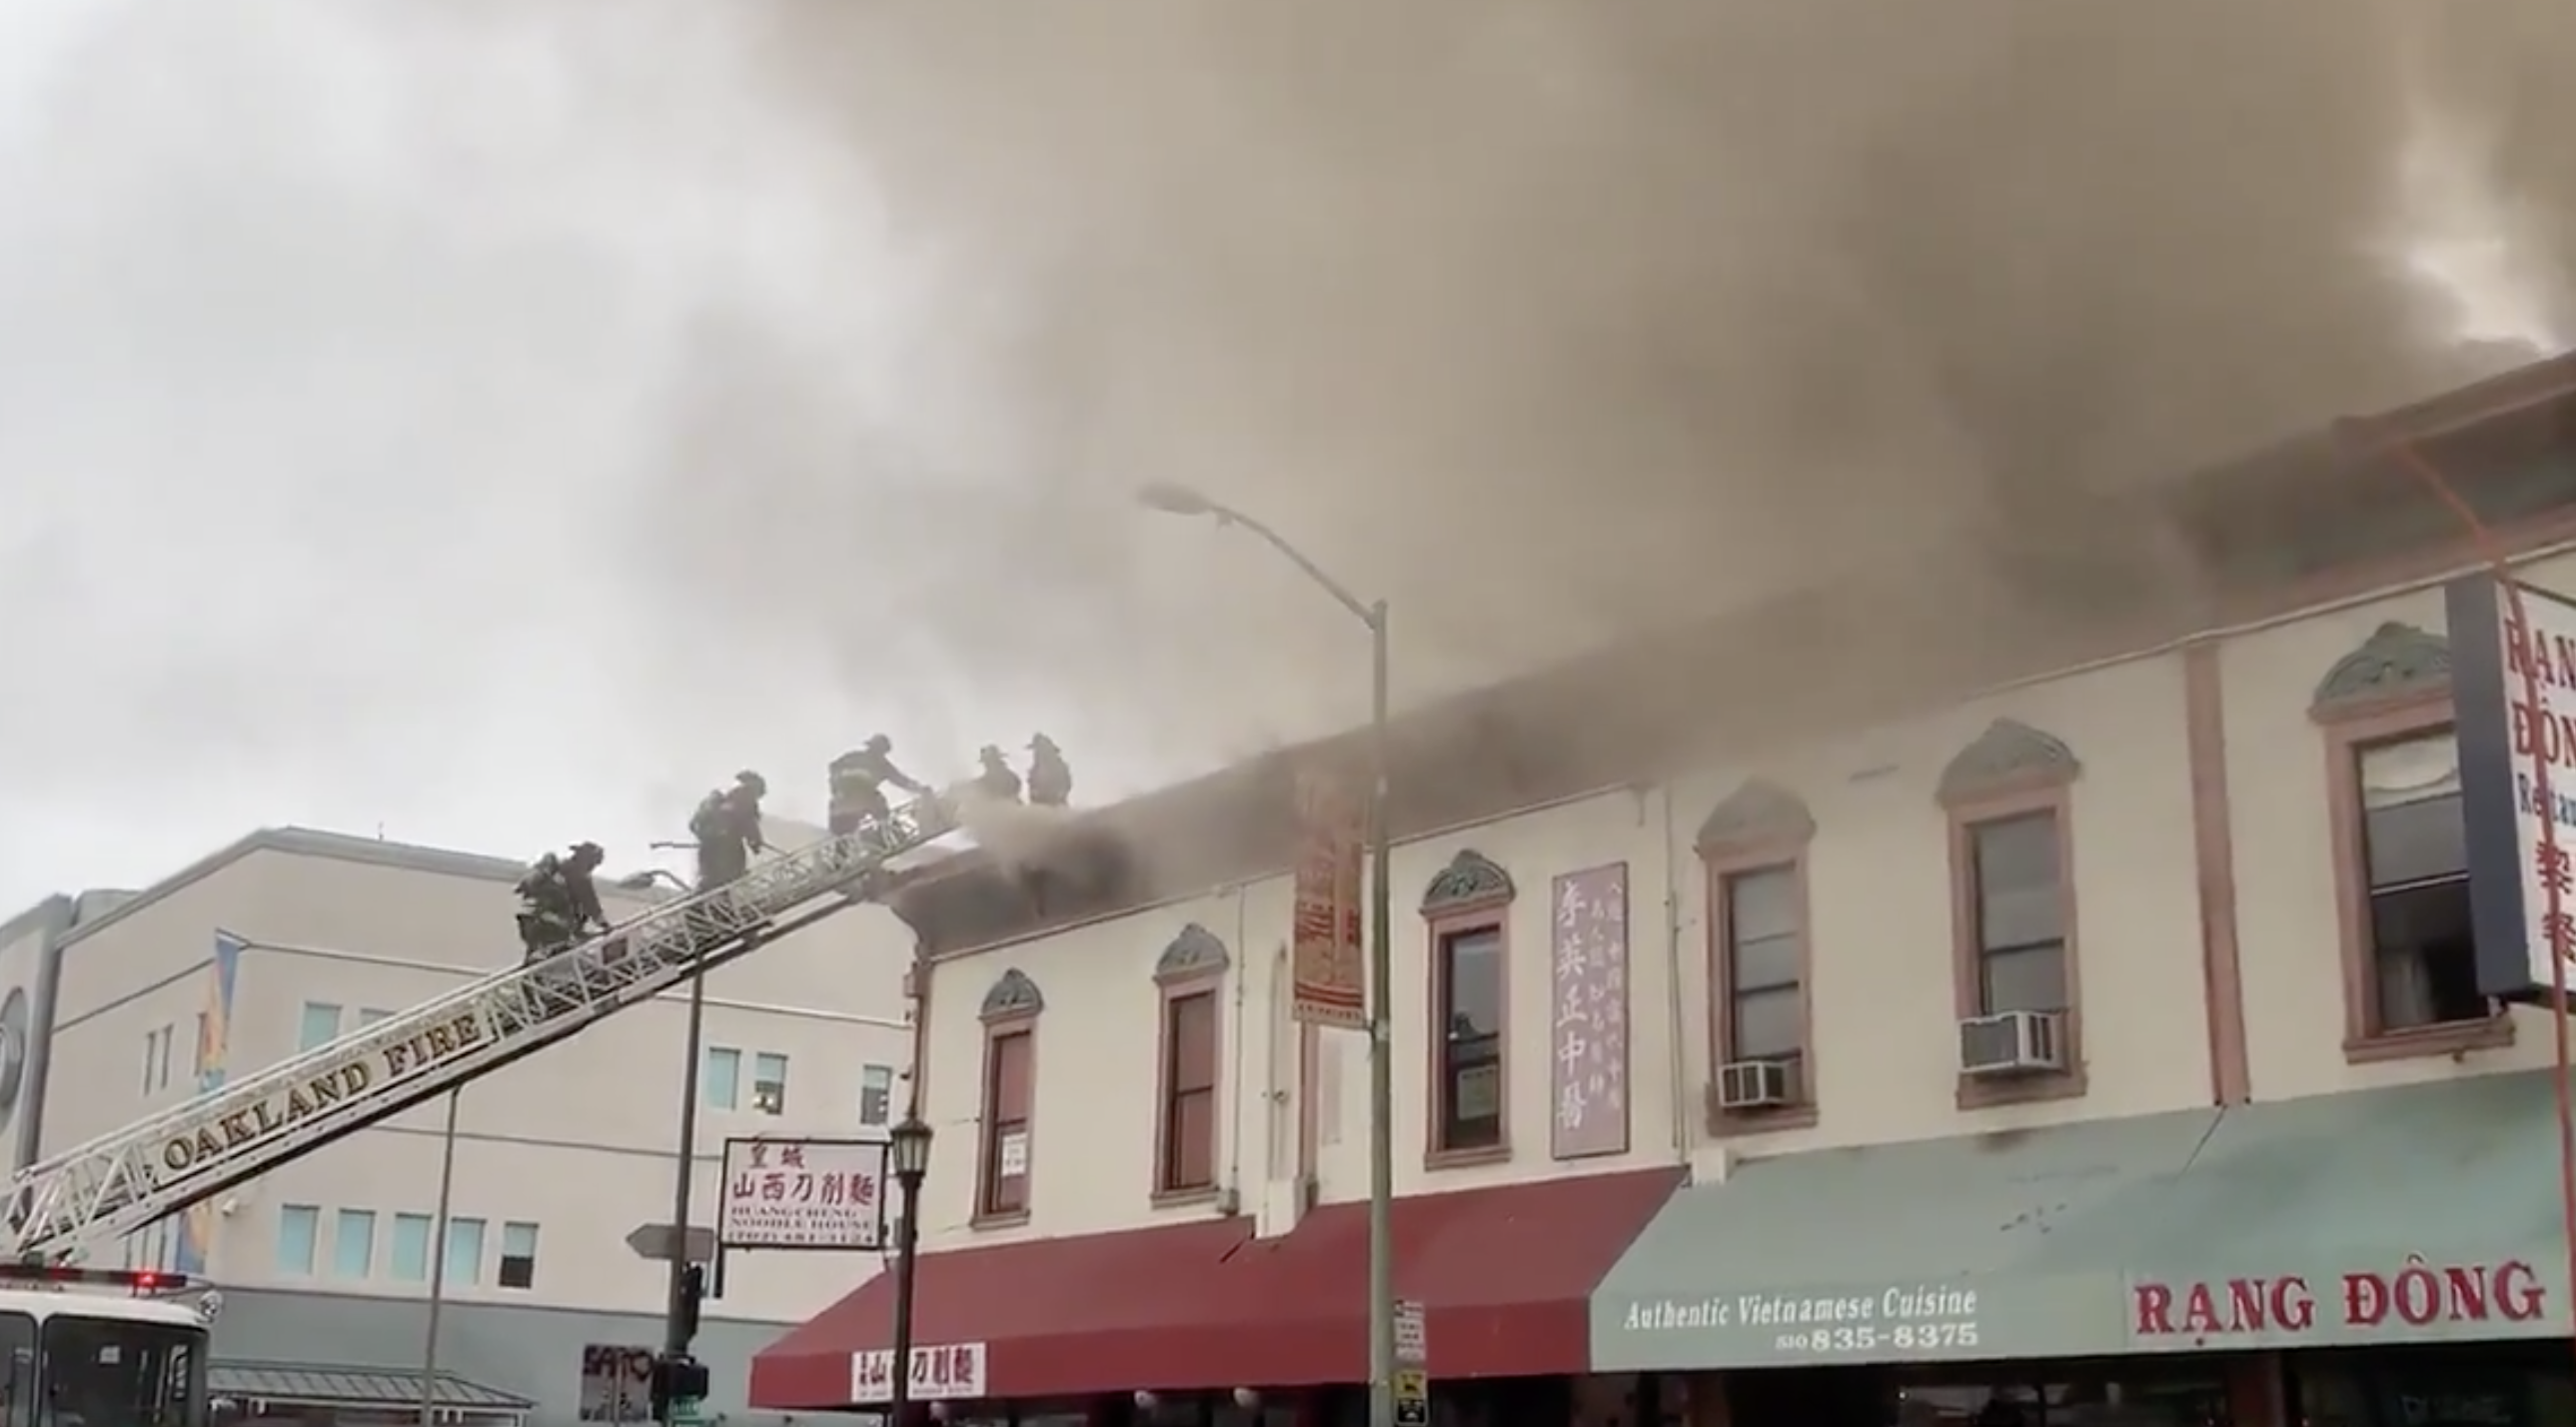 Firefighters climb onto the roof of the Chinatown building, with smoke billowing